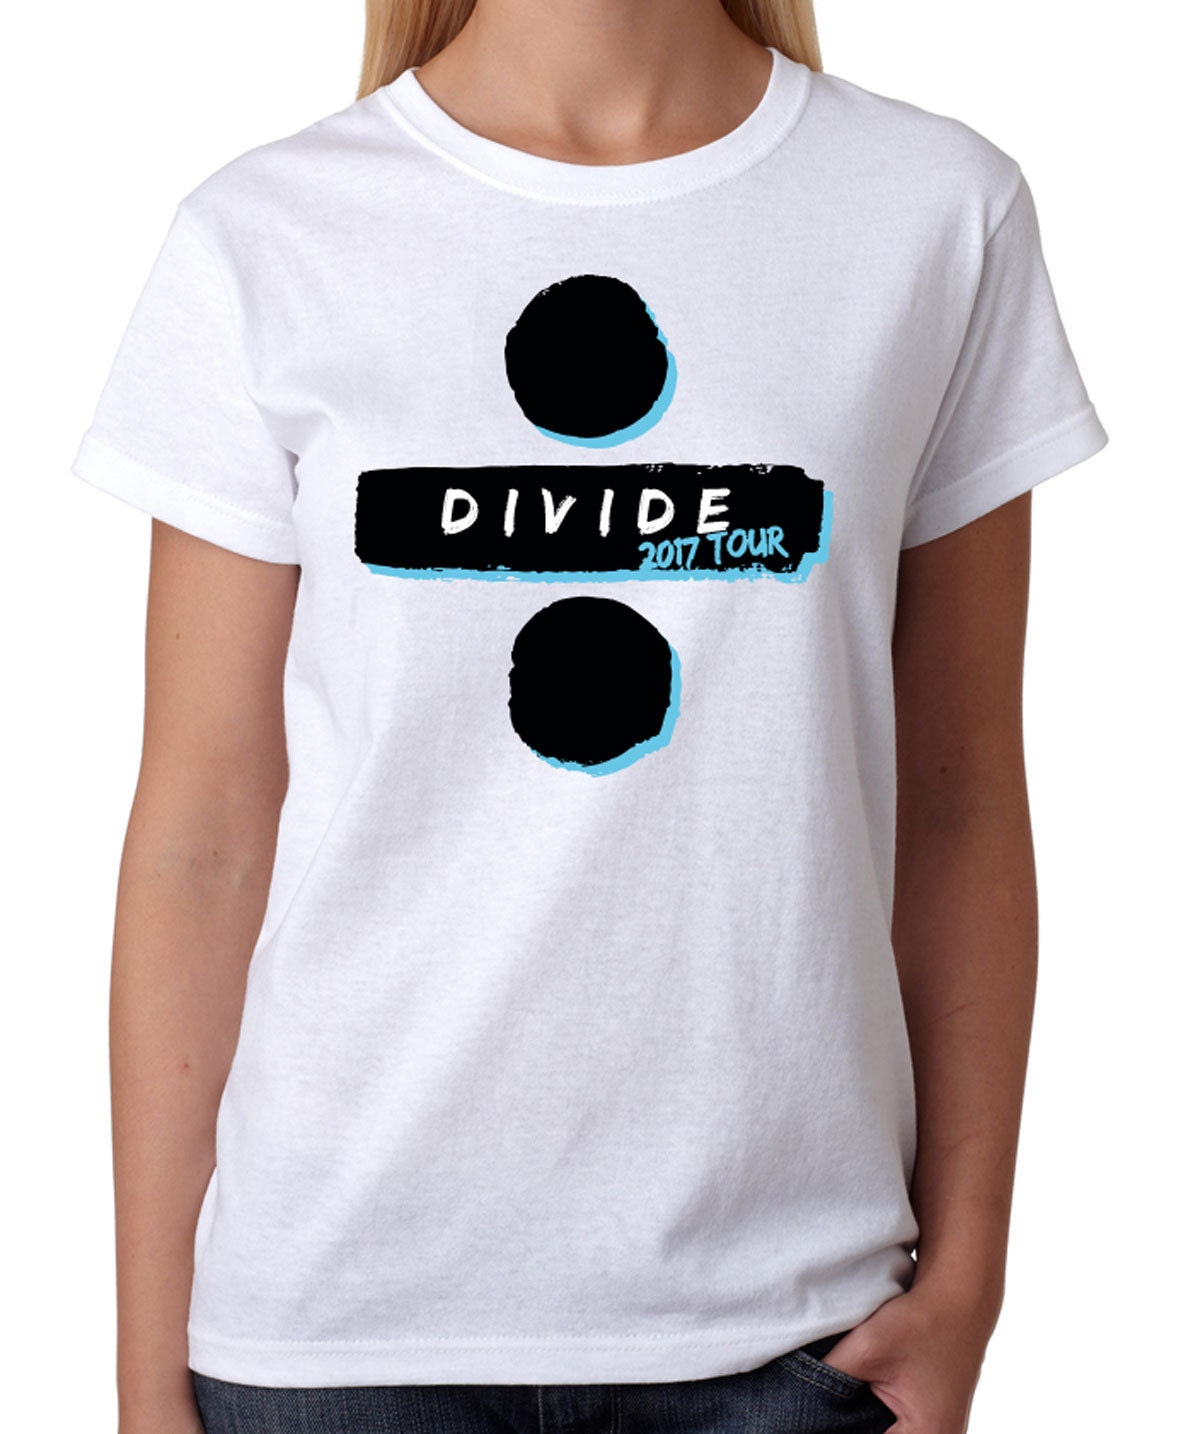 divide tour t shirt 2017 ed sheeran t shirt womens white tee. Black Bedroom Furniture Sets. Home Design Ideas